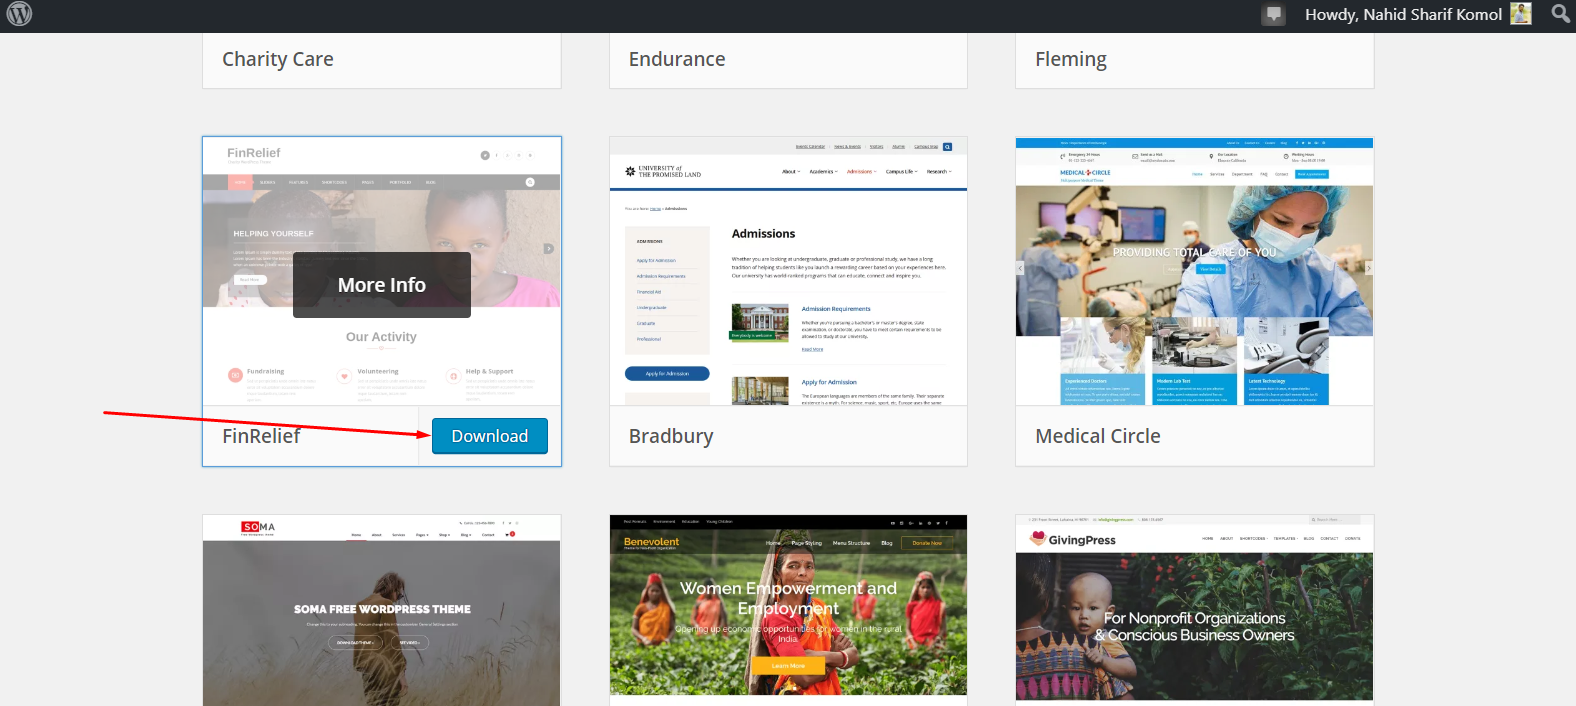 How to download a theme in WordPress